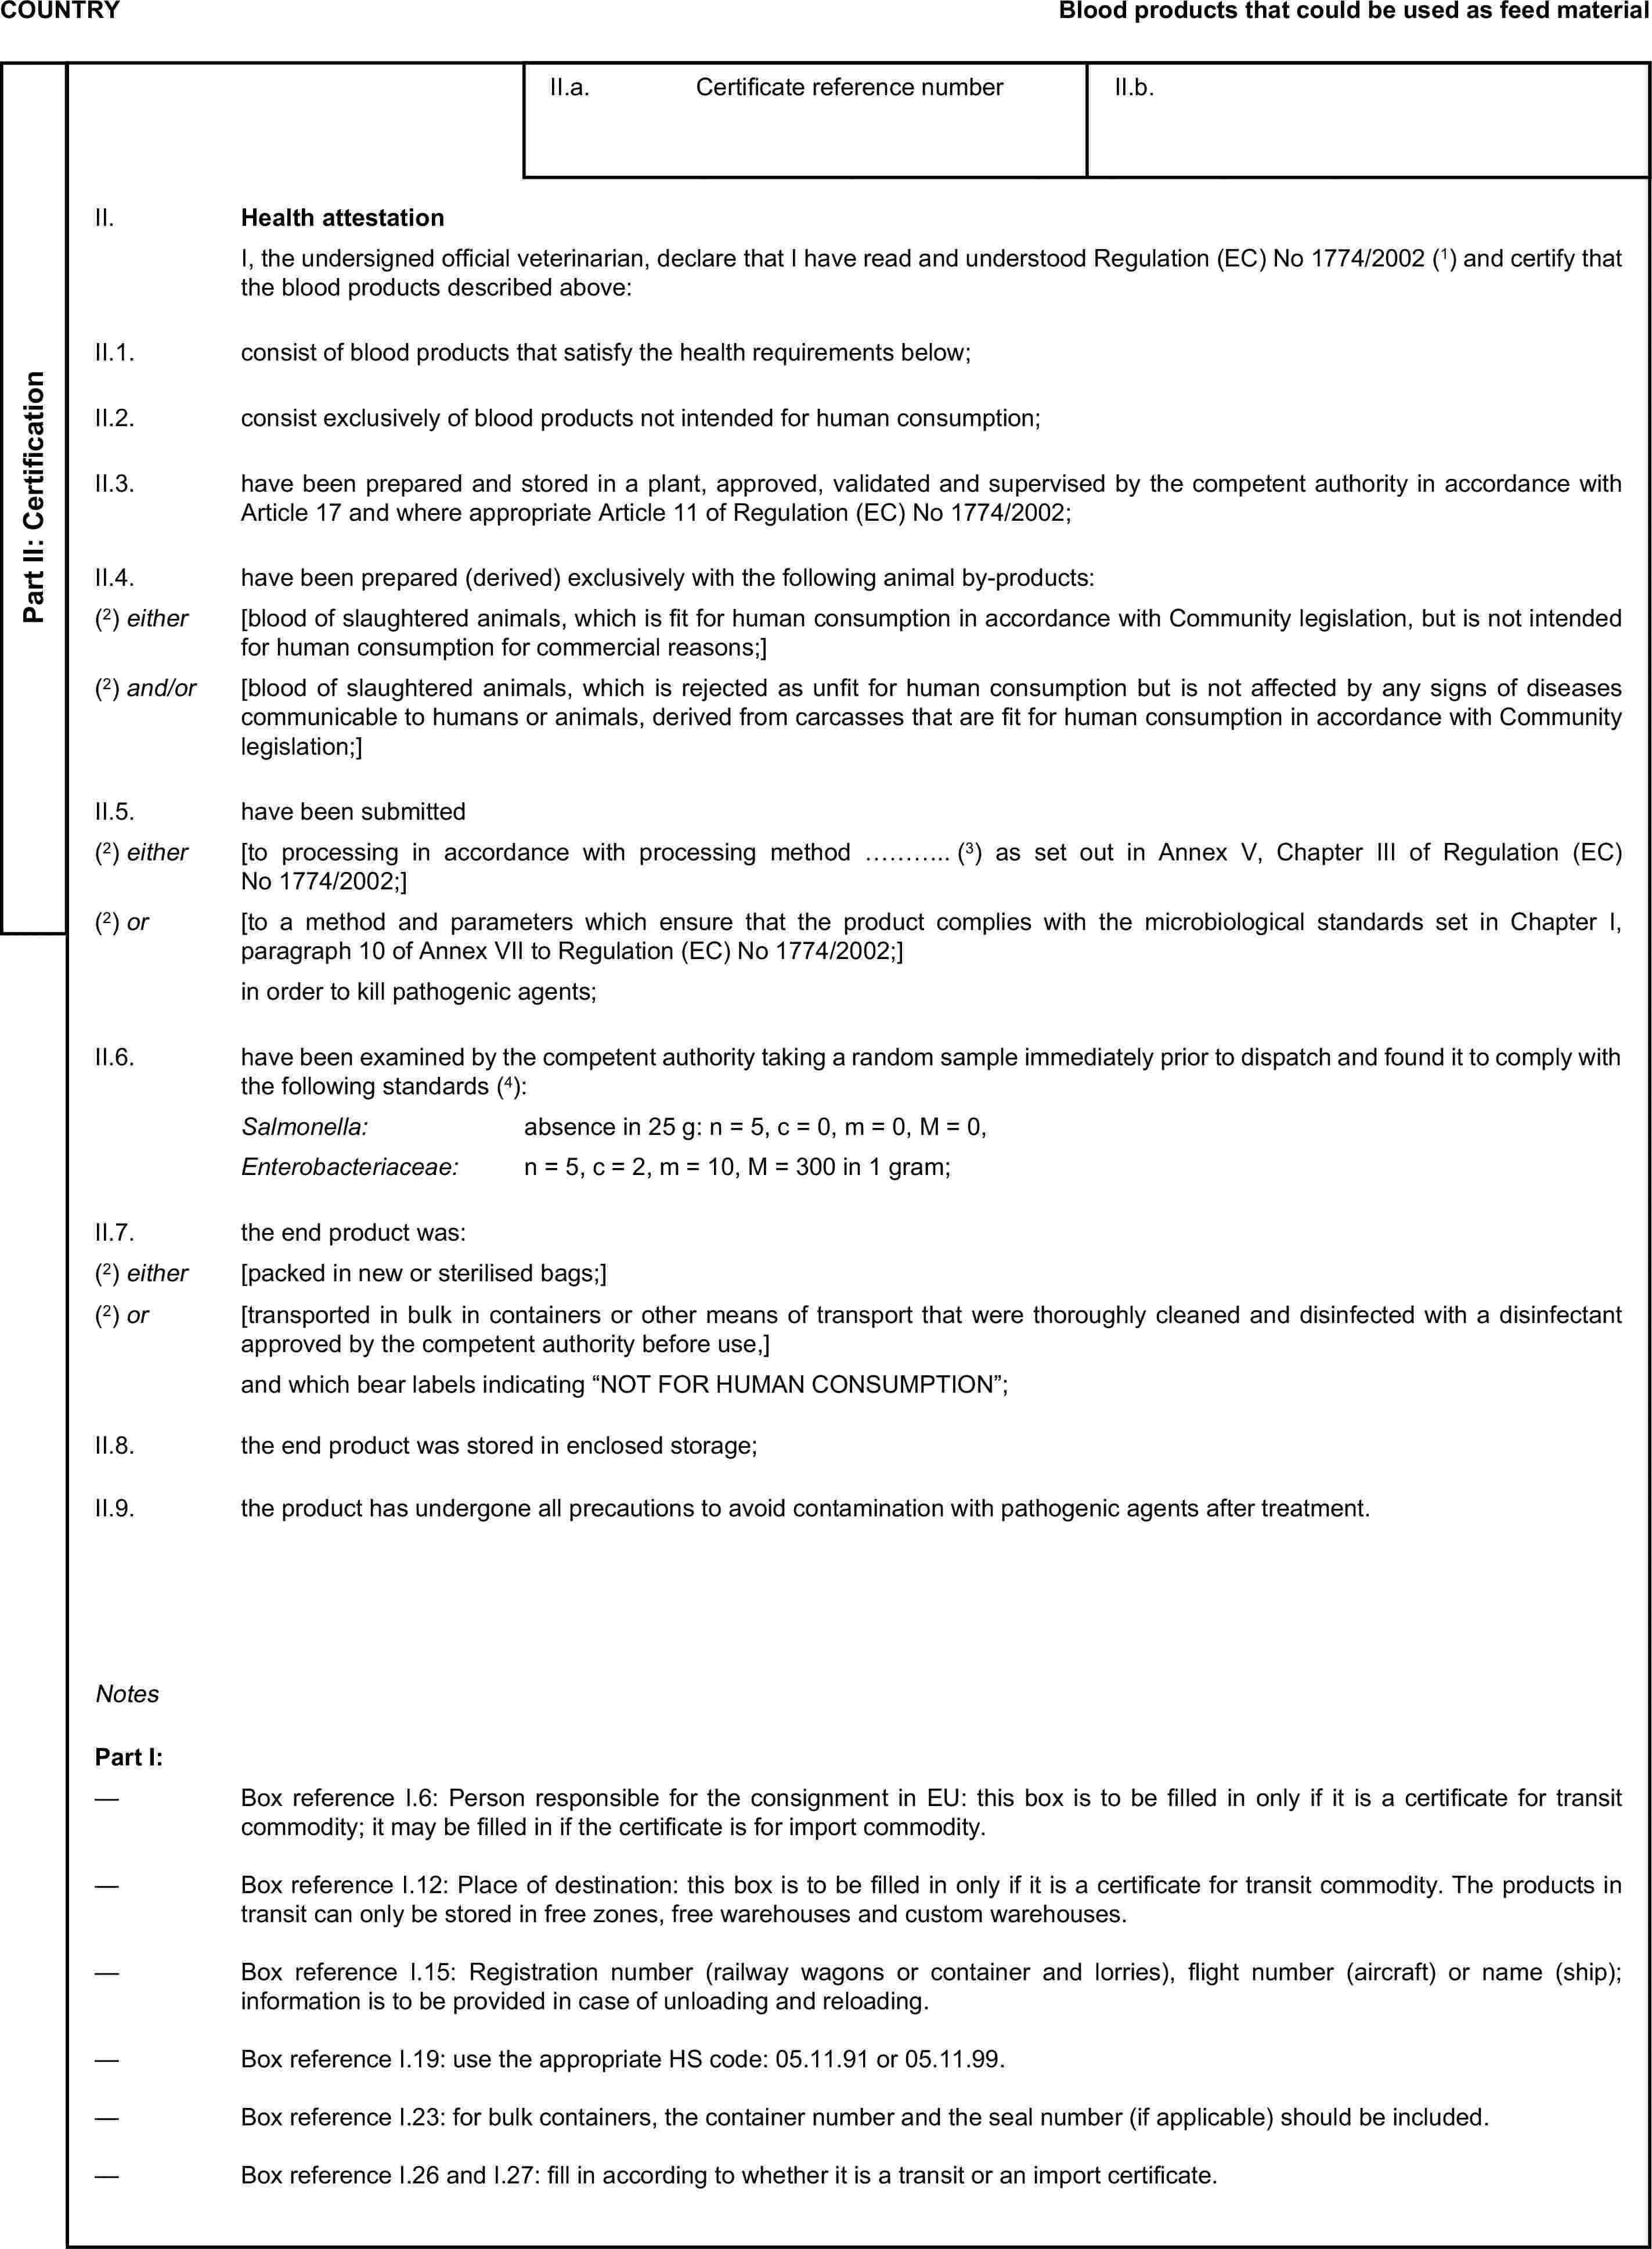 COUNTRYBlood products that could be used as feed materialPart II: CertificationII.a. Certificate reference numberII.b.II. Health attestationI, the undersigned official veterinarian, declare that I have read and understood Regulation (EC) No1774/2002(1) and certify that the blood products described above:II.1. consist of blood products that satisfy the health requirements below;II.2. consist exclusively of blood products not intended for human consumption;II.3. have been prepared and stored in a plant, approved, validated and supervised by the competent authority in accordance with Article 17 and where appropriate Article 11 of Regulation (EC) No 1774/2002;II.4. have been prepared (derived) exclusively with the following animal by-products:(2) either [blood of slaughtered animals, which is fit for human consumption in accordance with Community legislation, but is not intended for human consumption for commercial reasons;](2) and/or [blood of slaughtered animals, which is rejected as unfit for human consumption but is not affected by any signs of diseases communicable to humans or animals, derived from carcasses that are fit for human consumption in accordance with Community legislation;]II.5. have been submitted(2) either [to processing in accordance with processing method ………..(3) as set out in Annex V, Chapter III of Regulation (EC) No 1774/2002;](2) or [to a method and parameters which ensure that the product complies with the microbiological standards set in Chapter I, paragraph 10 of Annex VII to Regulation (EC) No 1774/2002;]in order to kill pathogenic agents;II.6. have been examined by the competent authority taking a random sample immediately prior to dispatch and found it to comply with the following standards(4):Salmonella: absence in 25g: n = 5, c = 0, m = 0, M = 0,Enterobacteriaceae: n = 5, c = 2, m = 10, M = 300 in 1 gram;II.7. the end product was:(2) either [packed in new or sterilised bags;](2) or [transported in bulk in containers or other means of tr